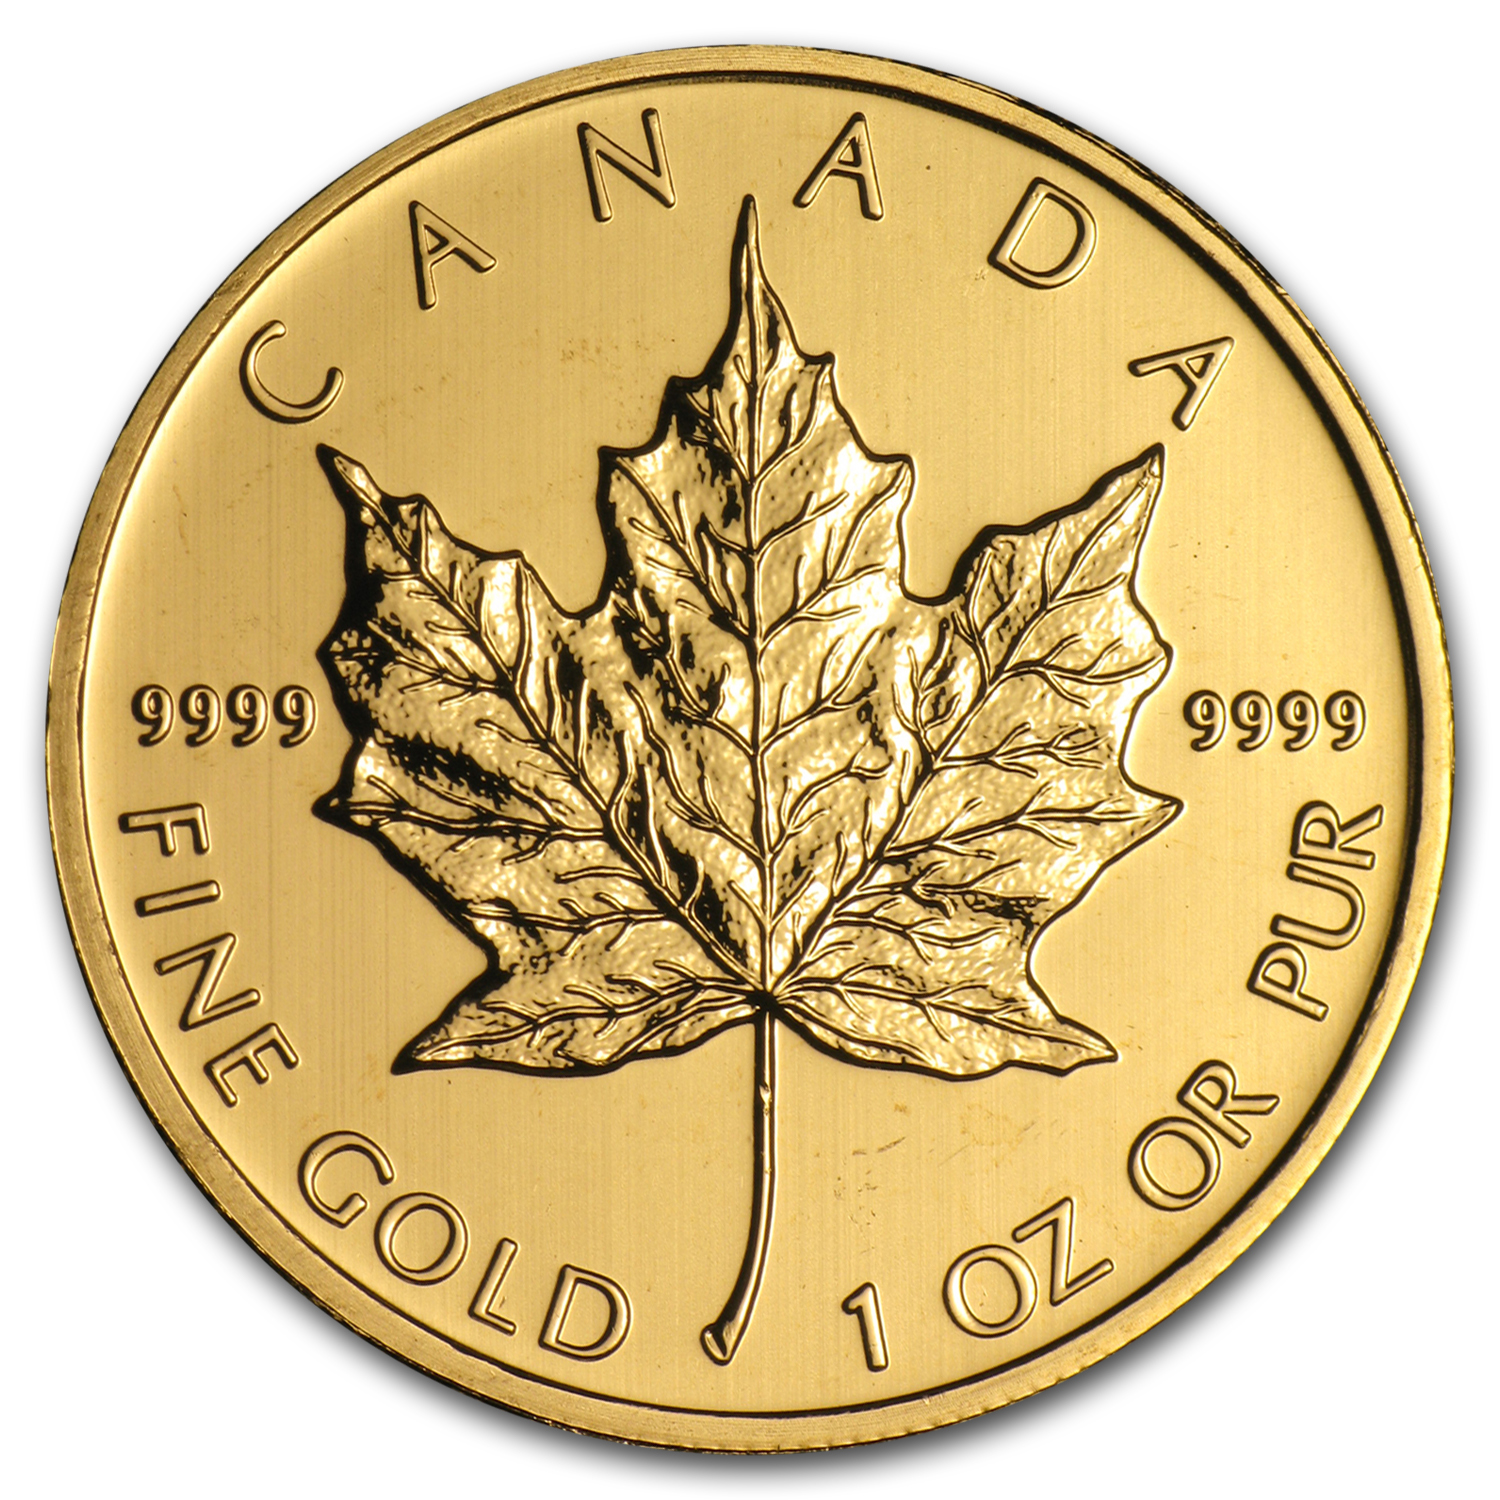 2012 1 oz Gold Canadian Maple Leaf - Brilliant Uncirculated